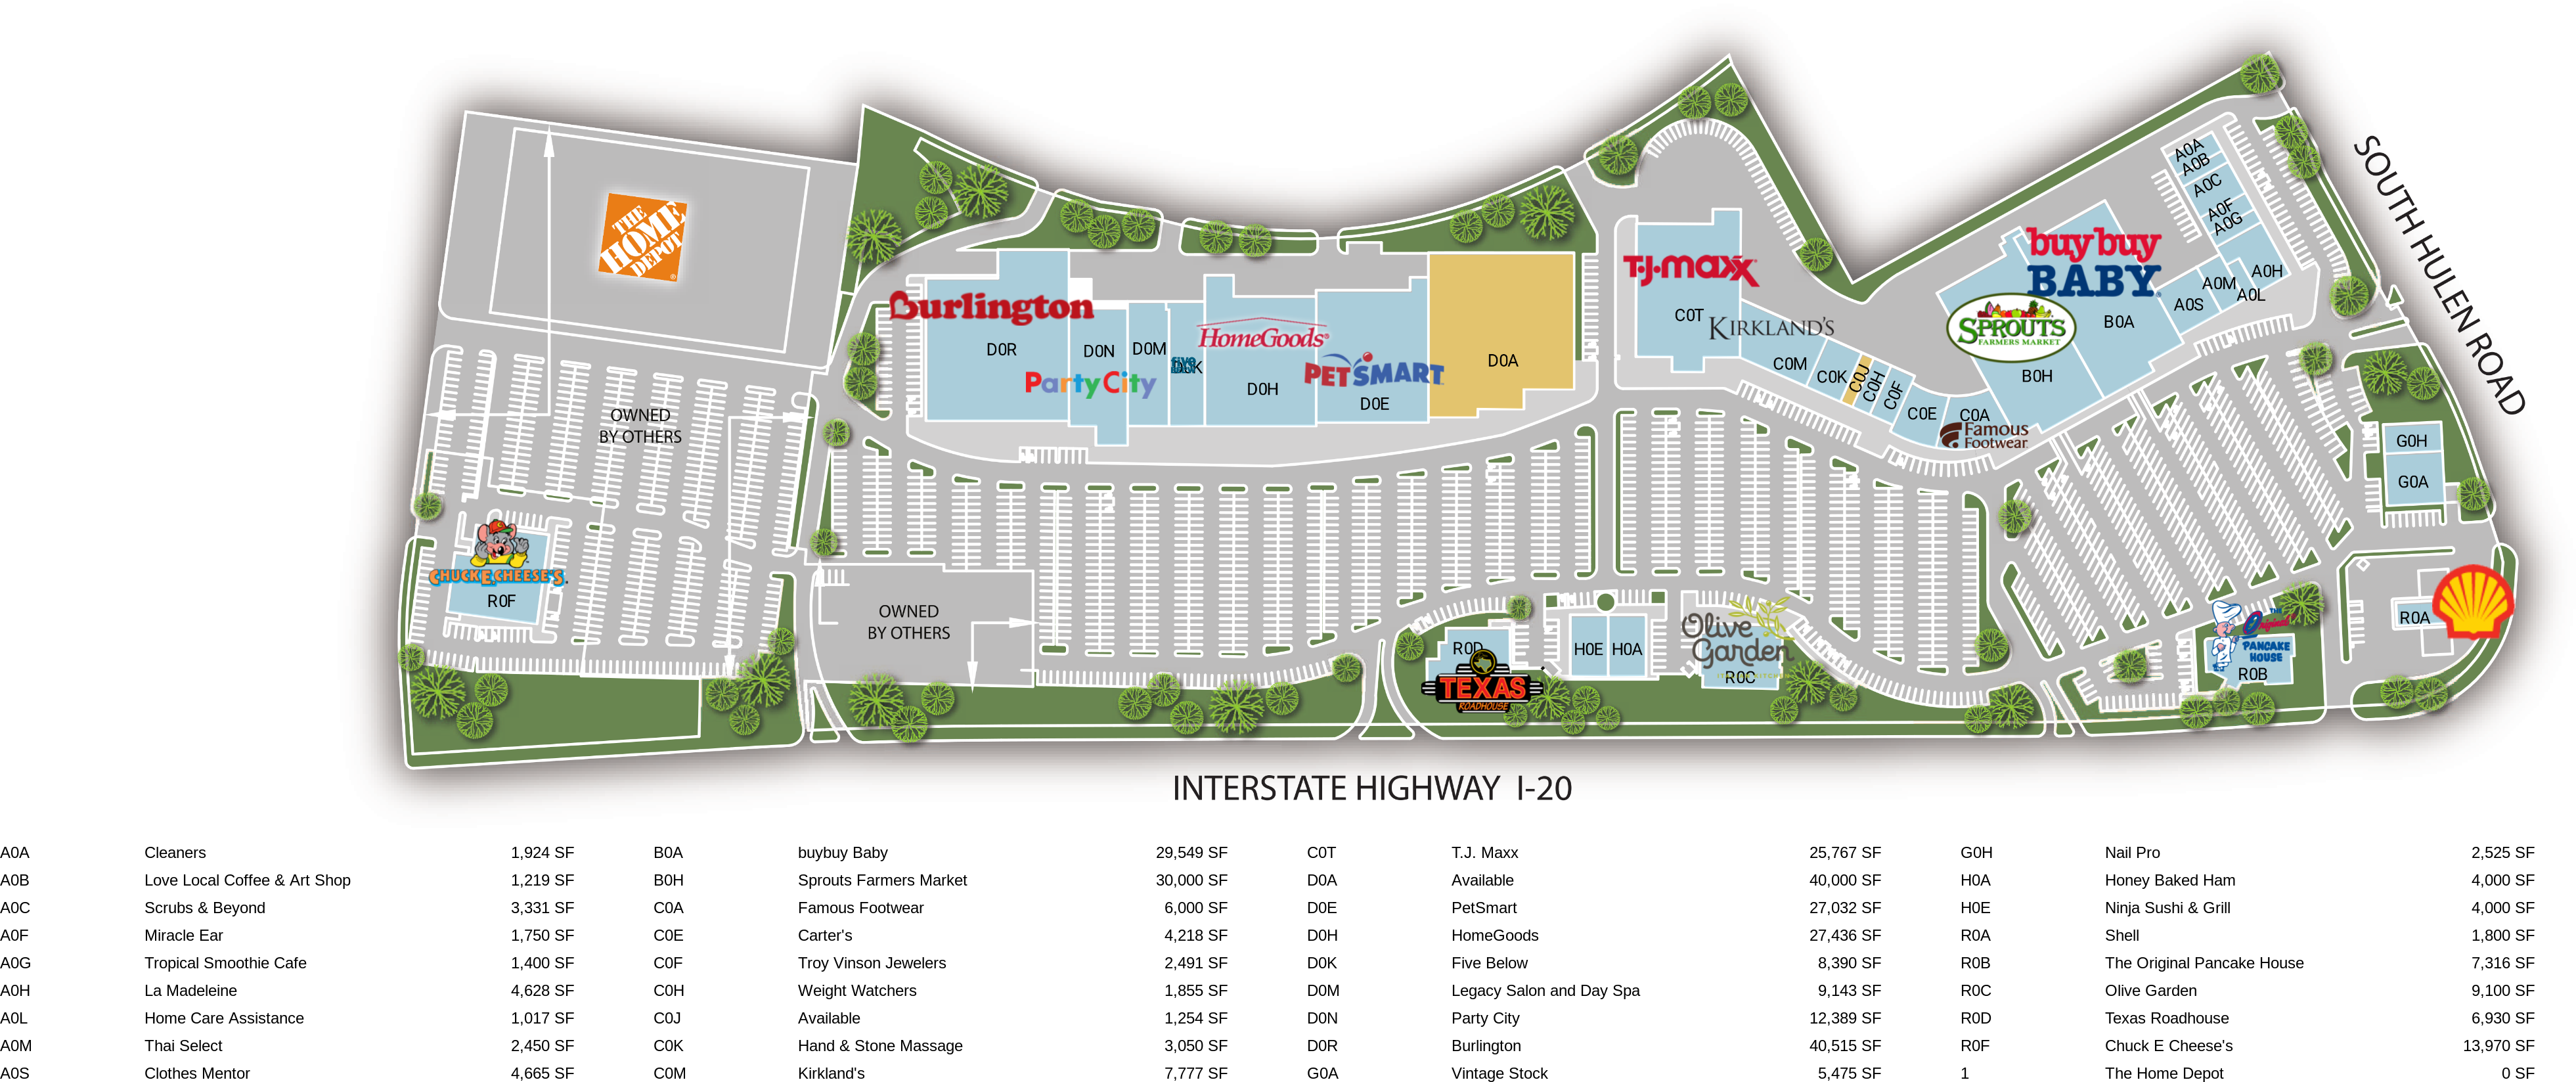 leesburg corner premium outlets map with Crabtree Valley Mall Map on Crabtree Valley Mall Map additionally Leesburg Hotels Clarion Inn Historic Leesburg h24372 further Leesburg Hotels Homewood Suites By Hilton Leesburg VA 300339 moreover Au Ugg Outlets In Pennsylvania furthermore fort suites.